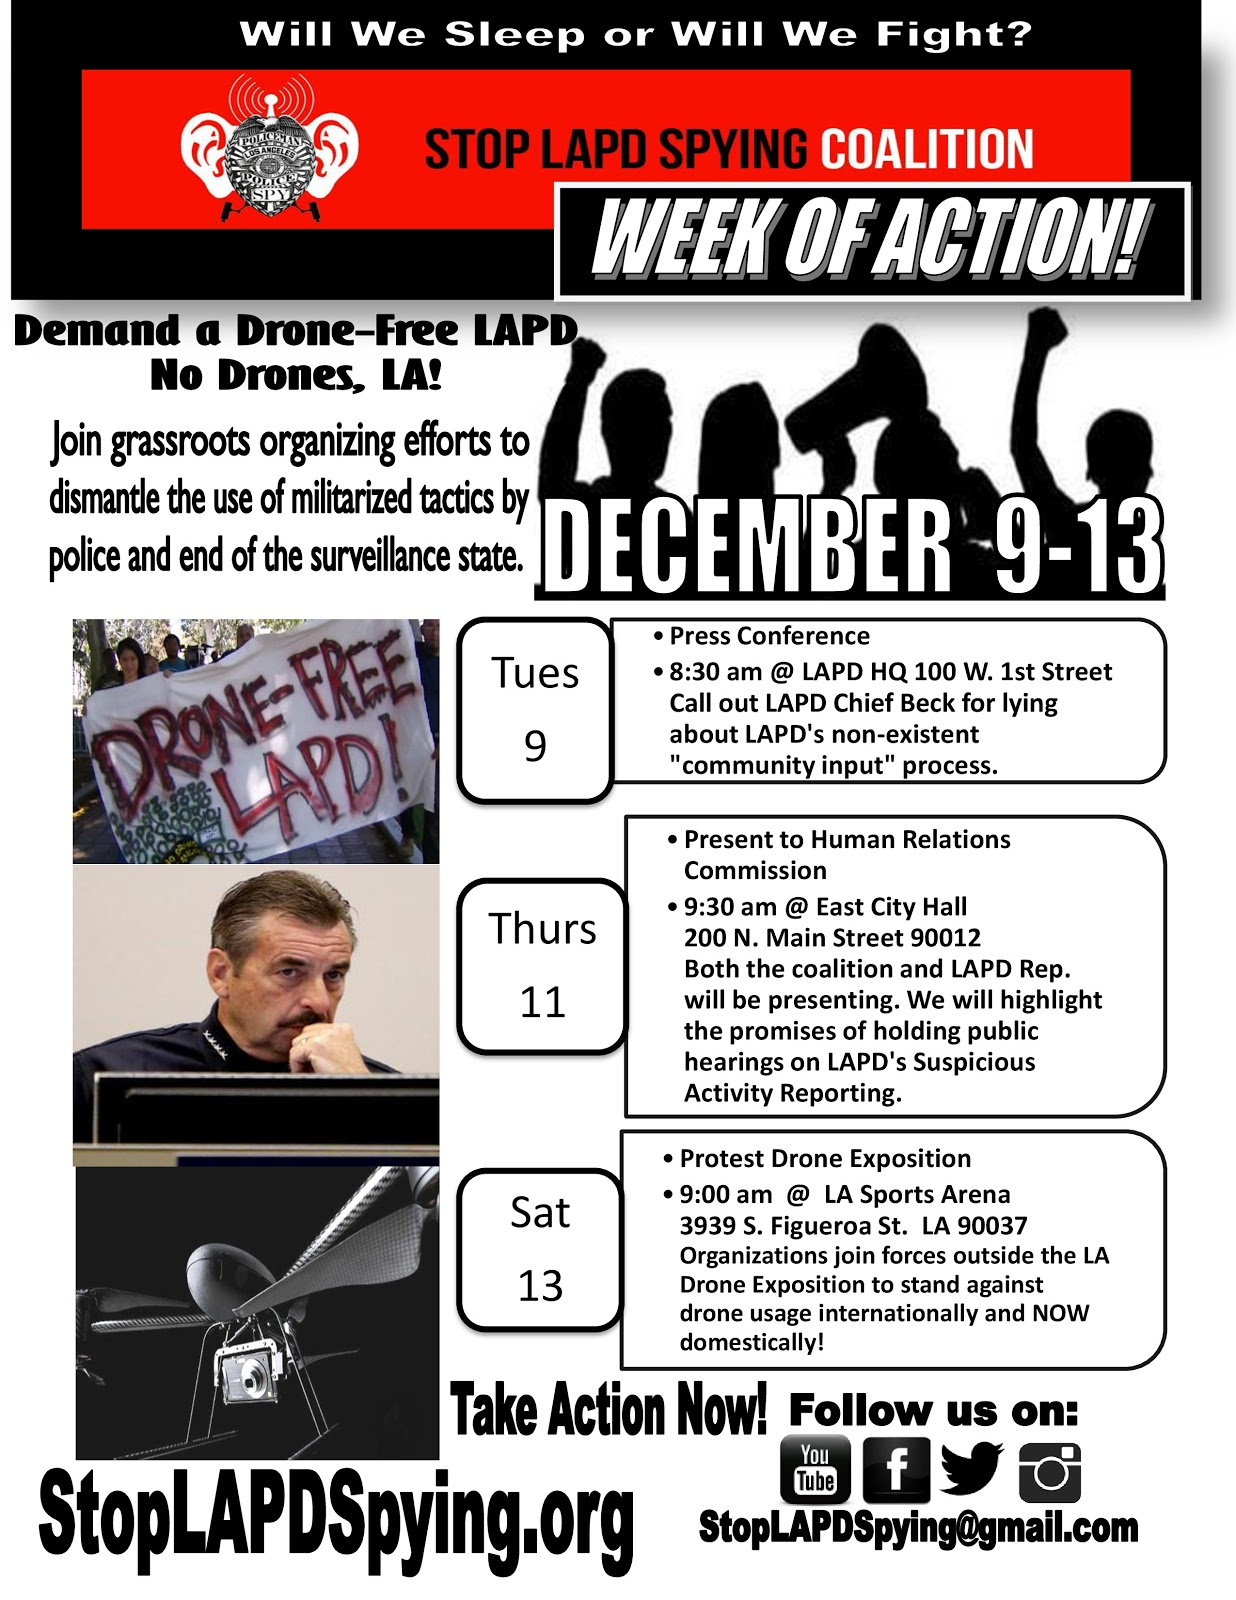 WeekofActionFlyer.jpg